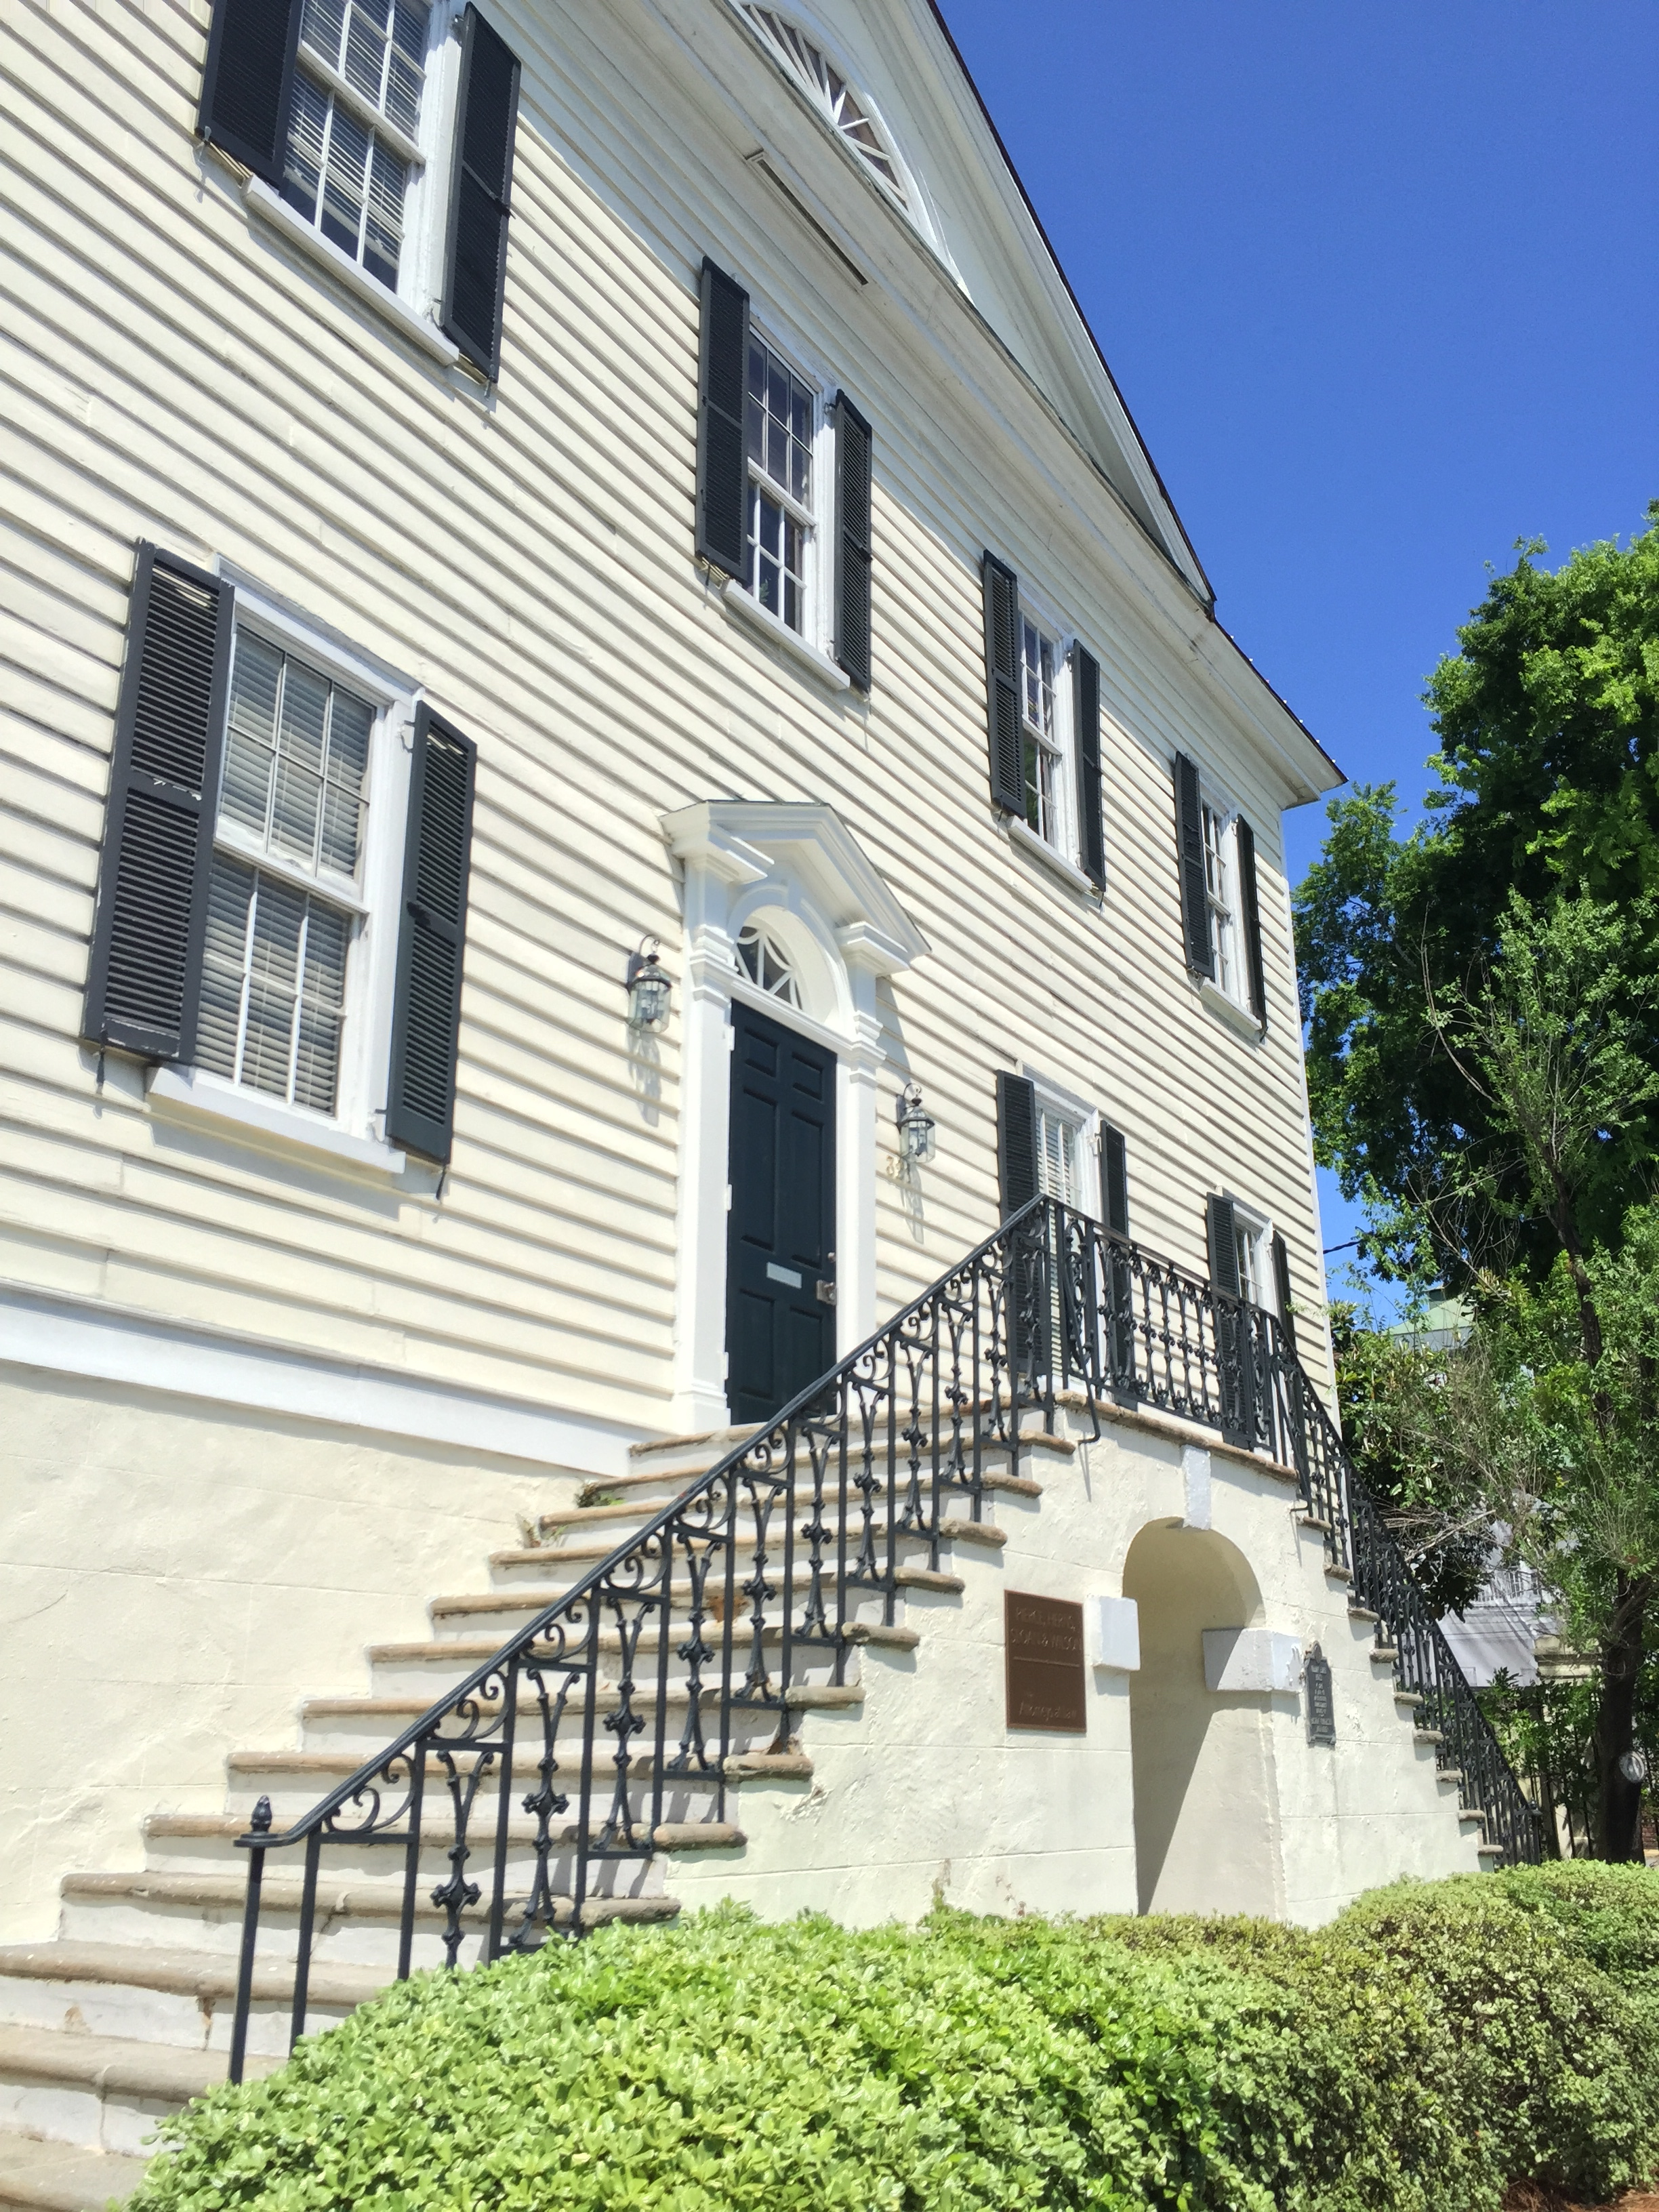 hydesville black singles Comprehensive list of the most haunted places in hydesville, ca, each  927 miles from hydesville, ca dating back  the apparition of a black-caped man with a.